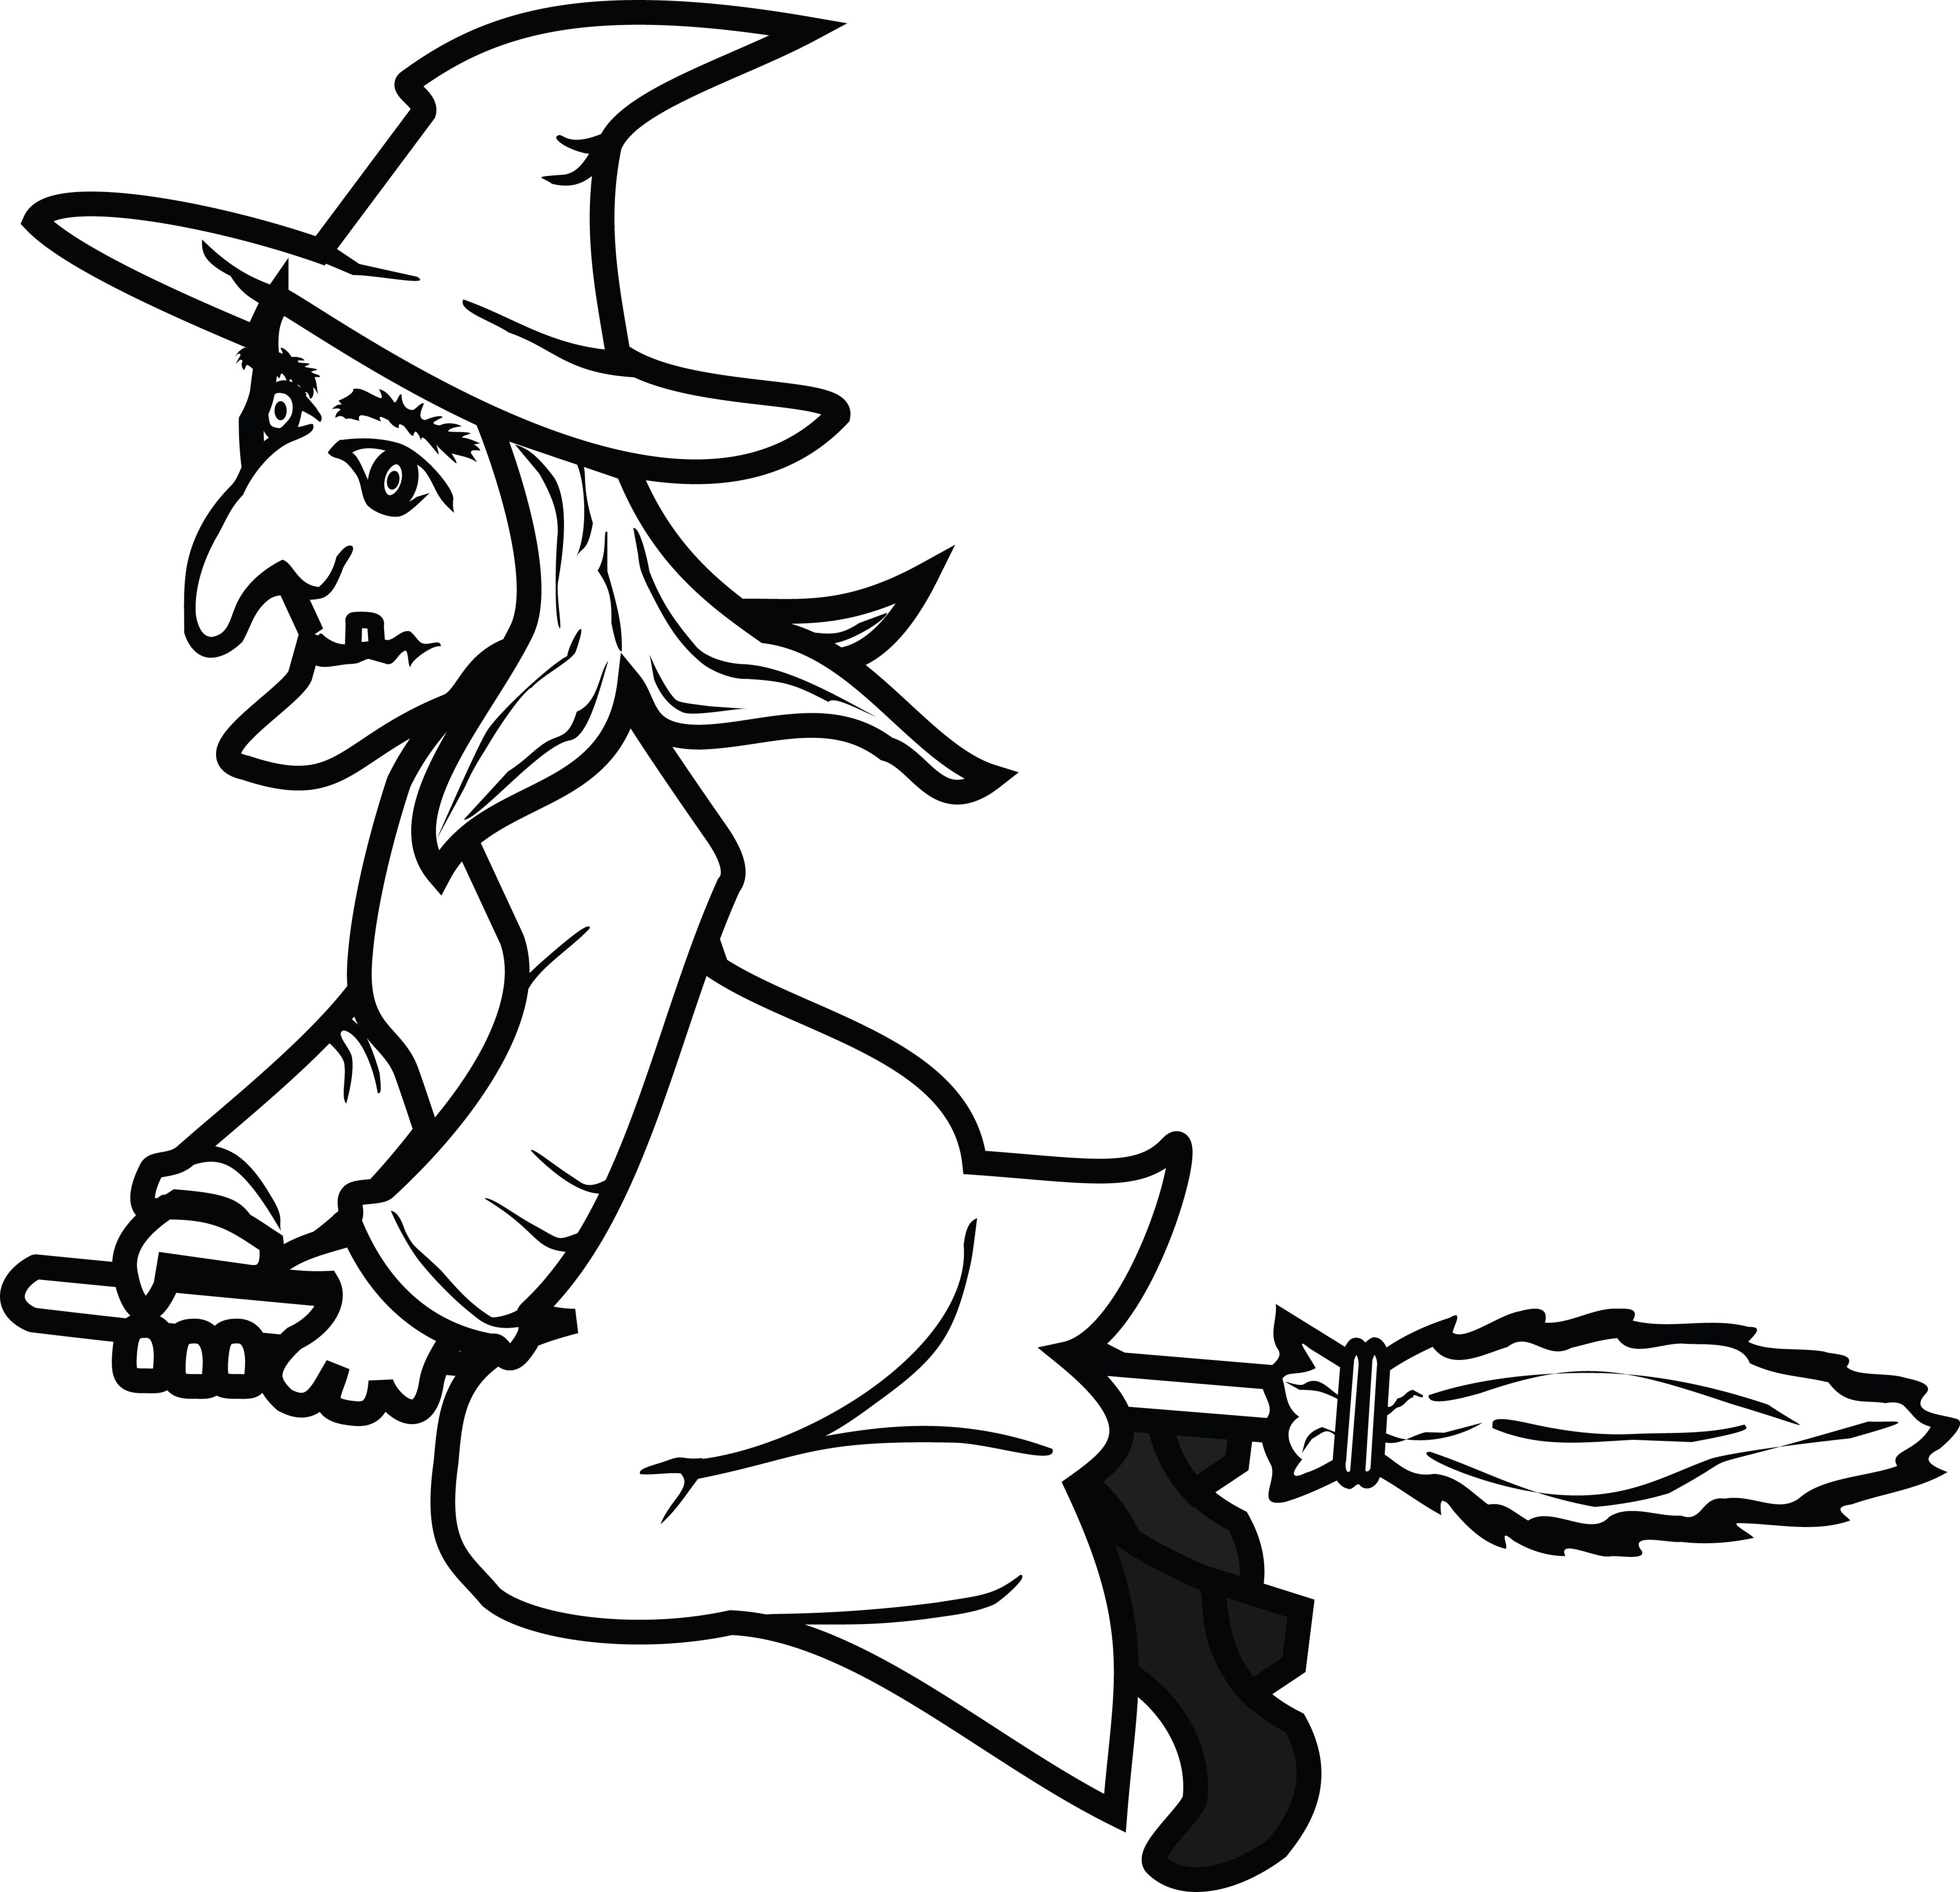 Witch Clipart Black And White Ideas Witch Clipart Clipart Black And White Cartoon Witch